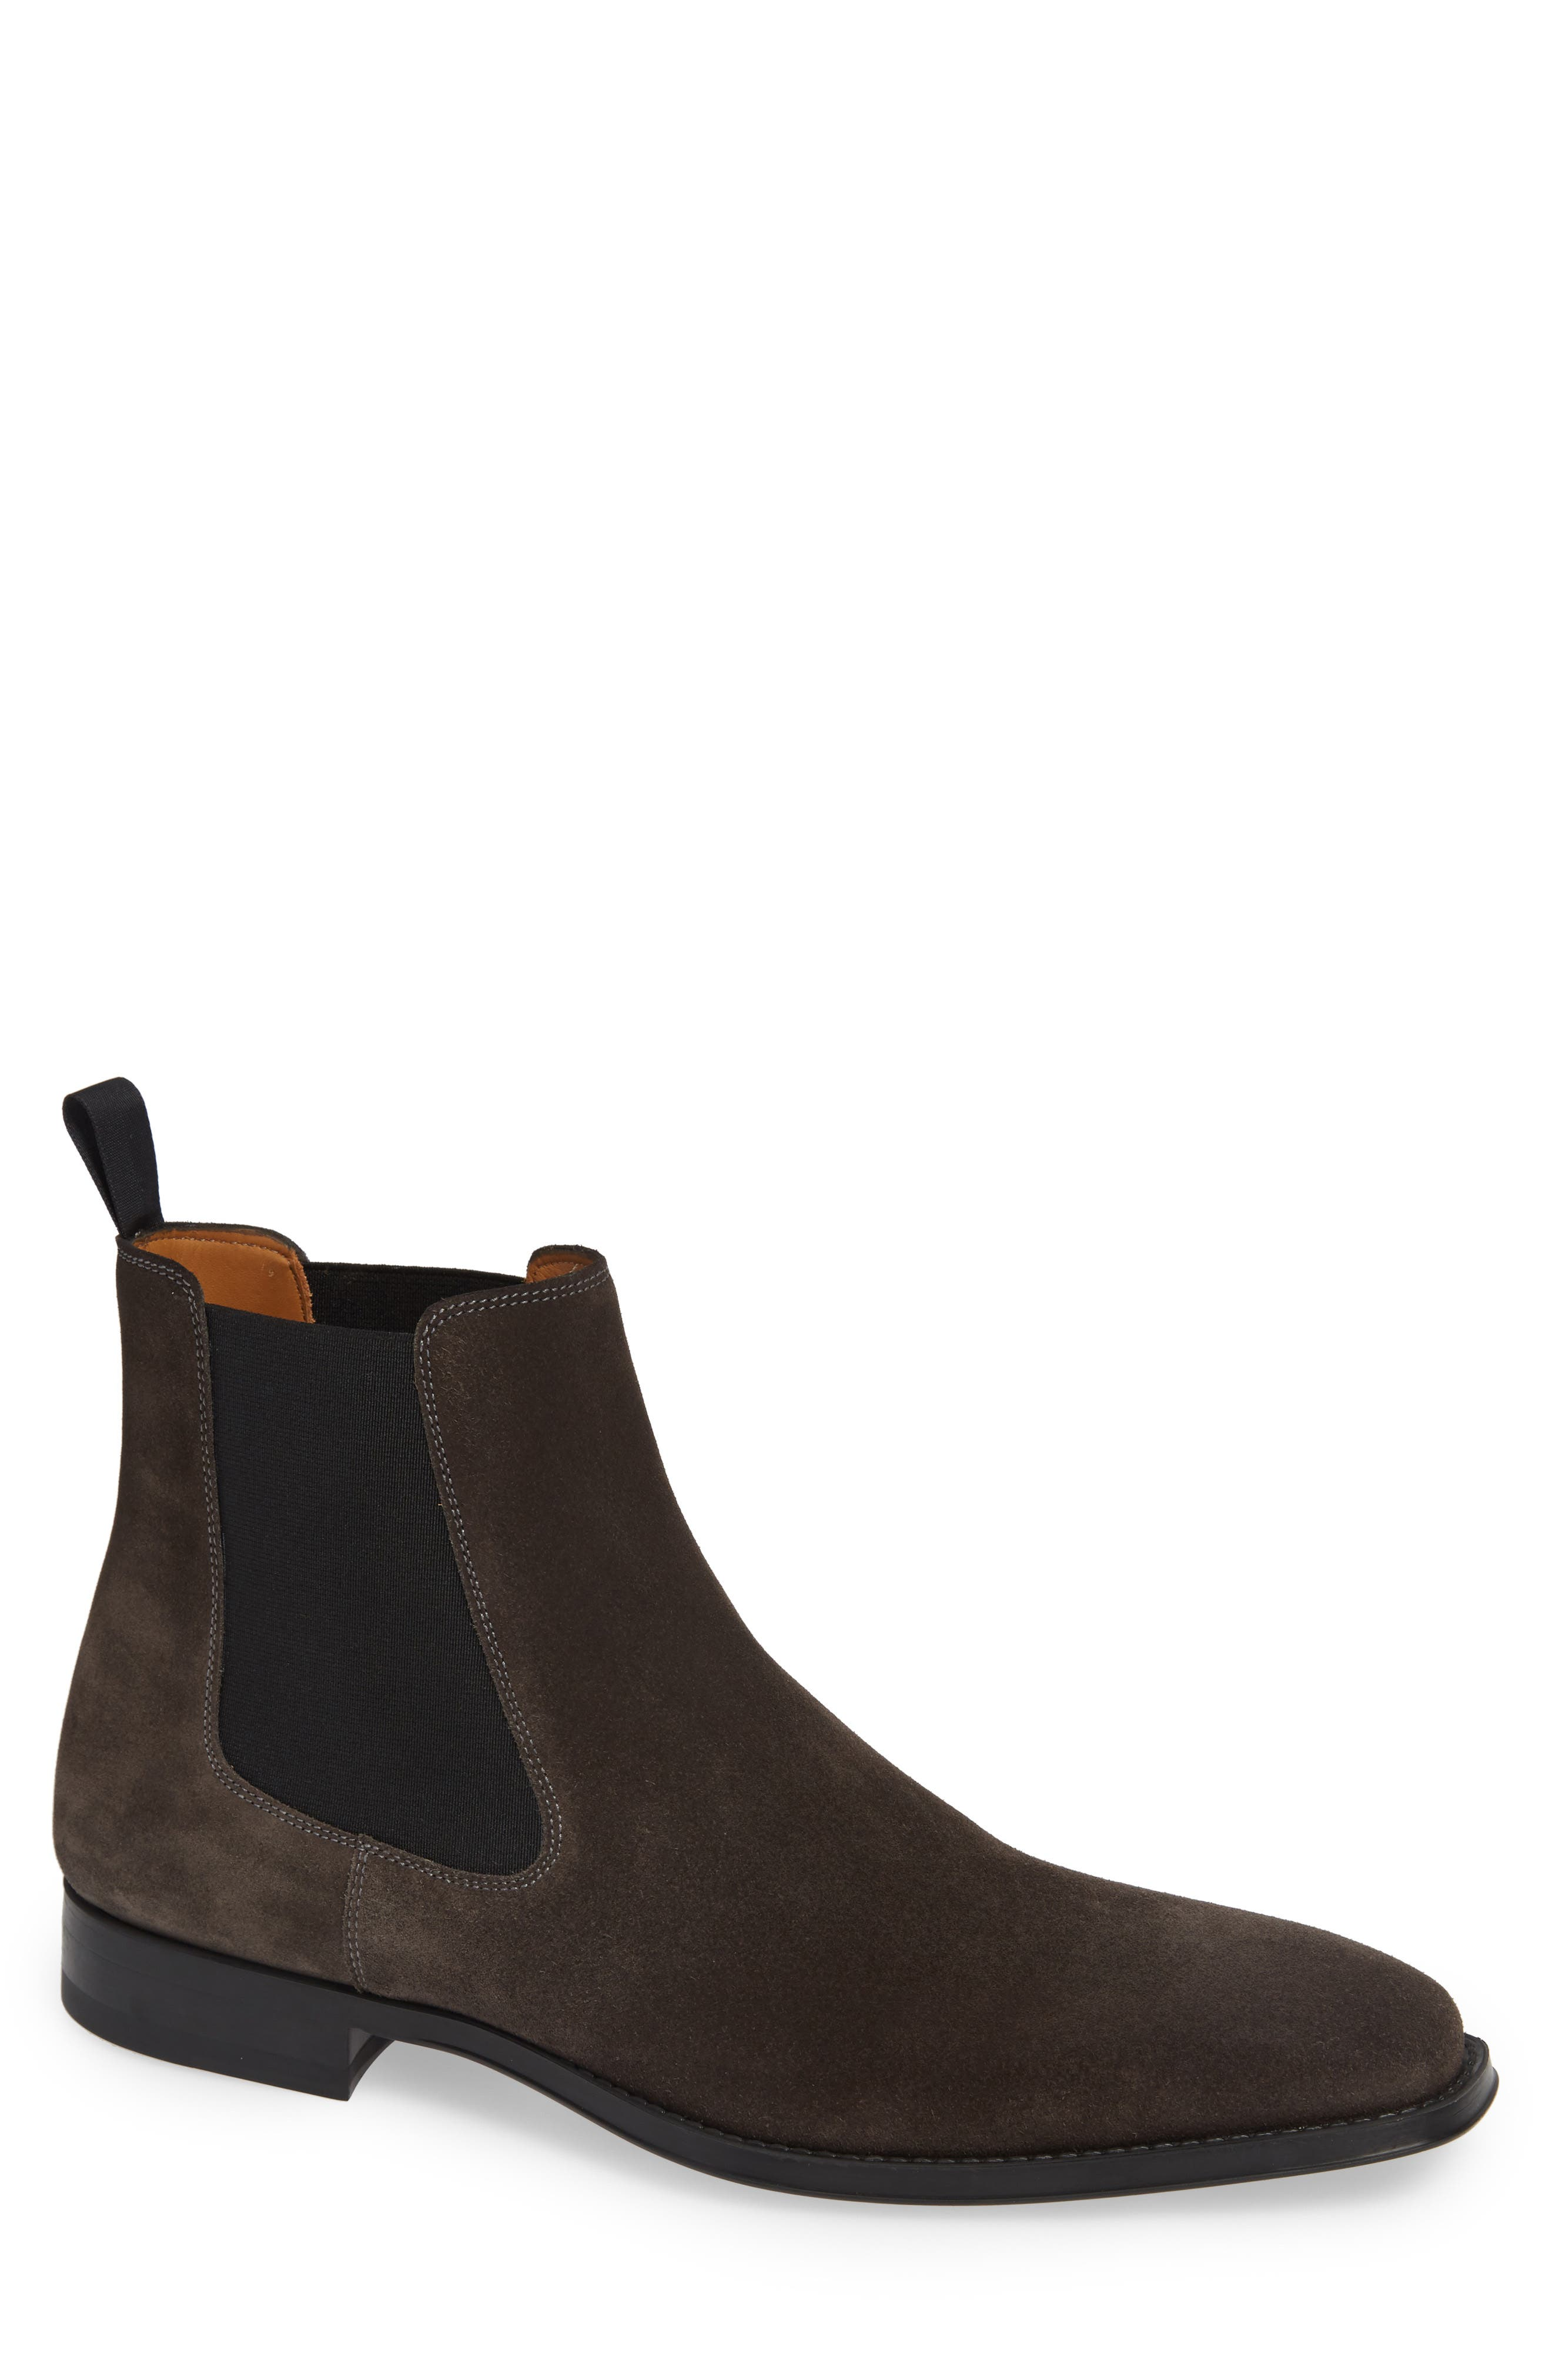 'Sean' Chelsea Boot,                         Main,                         color, GREY LEATHER